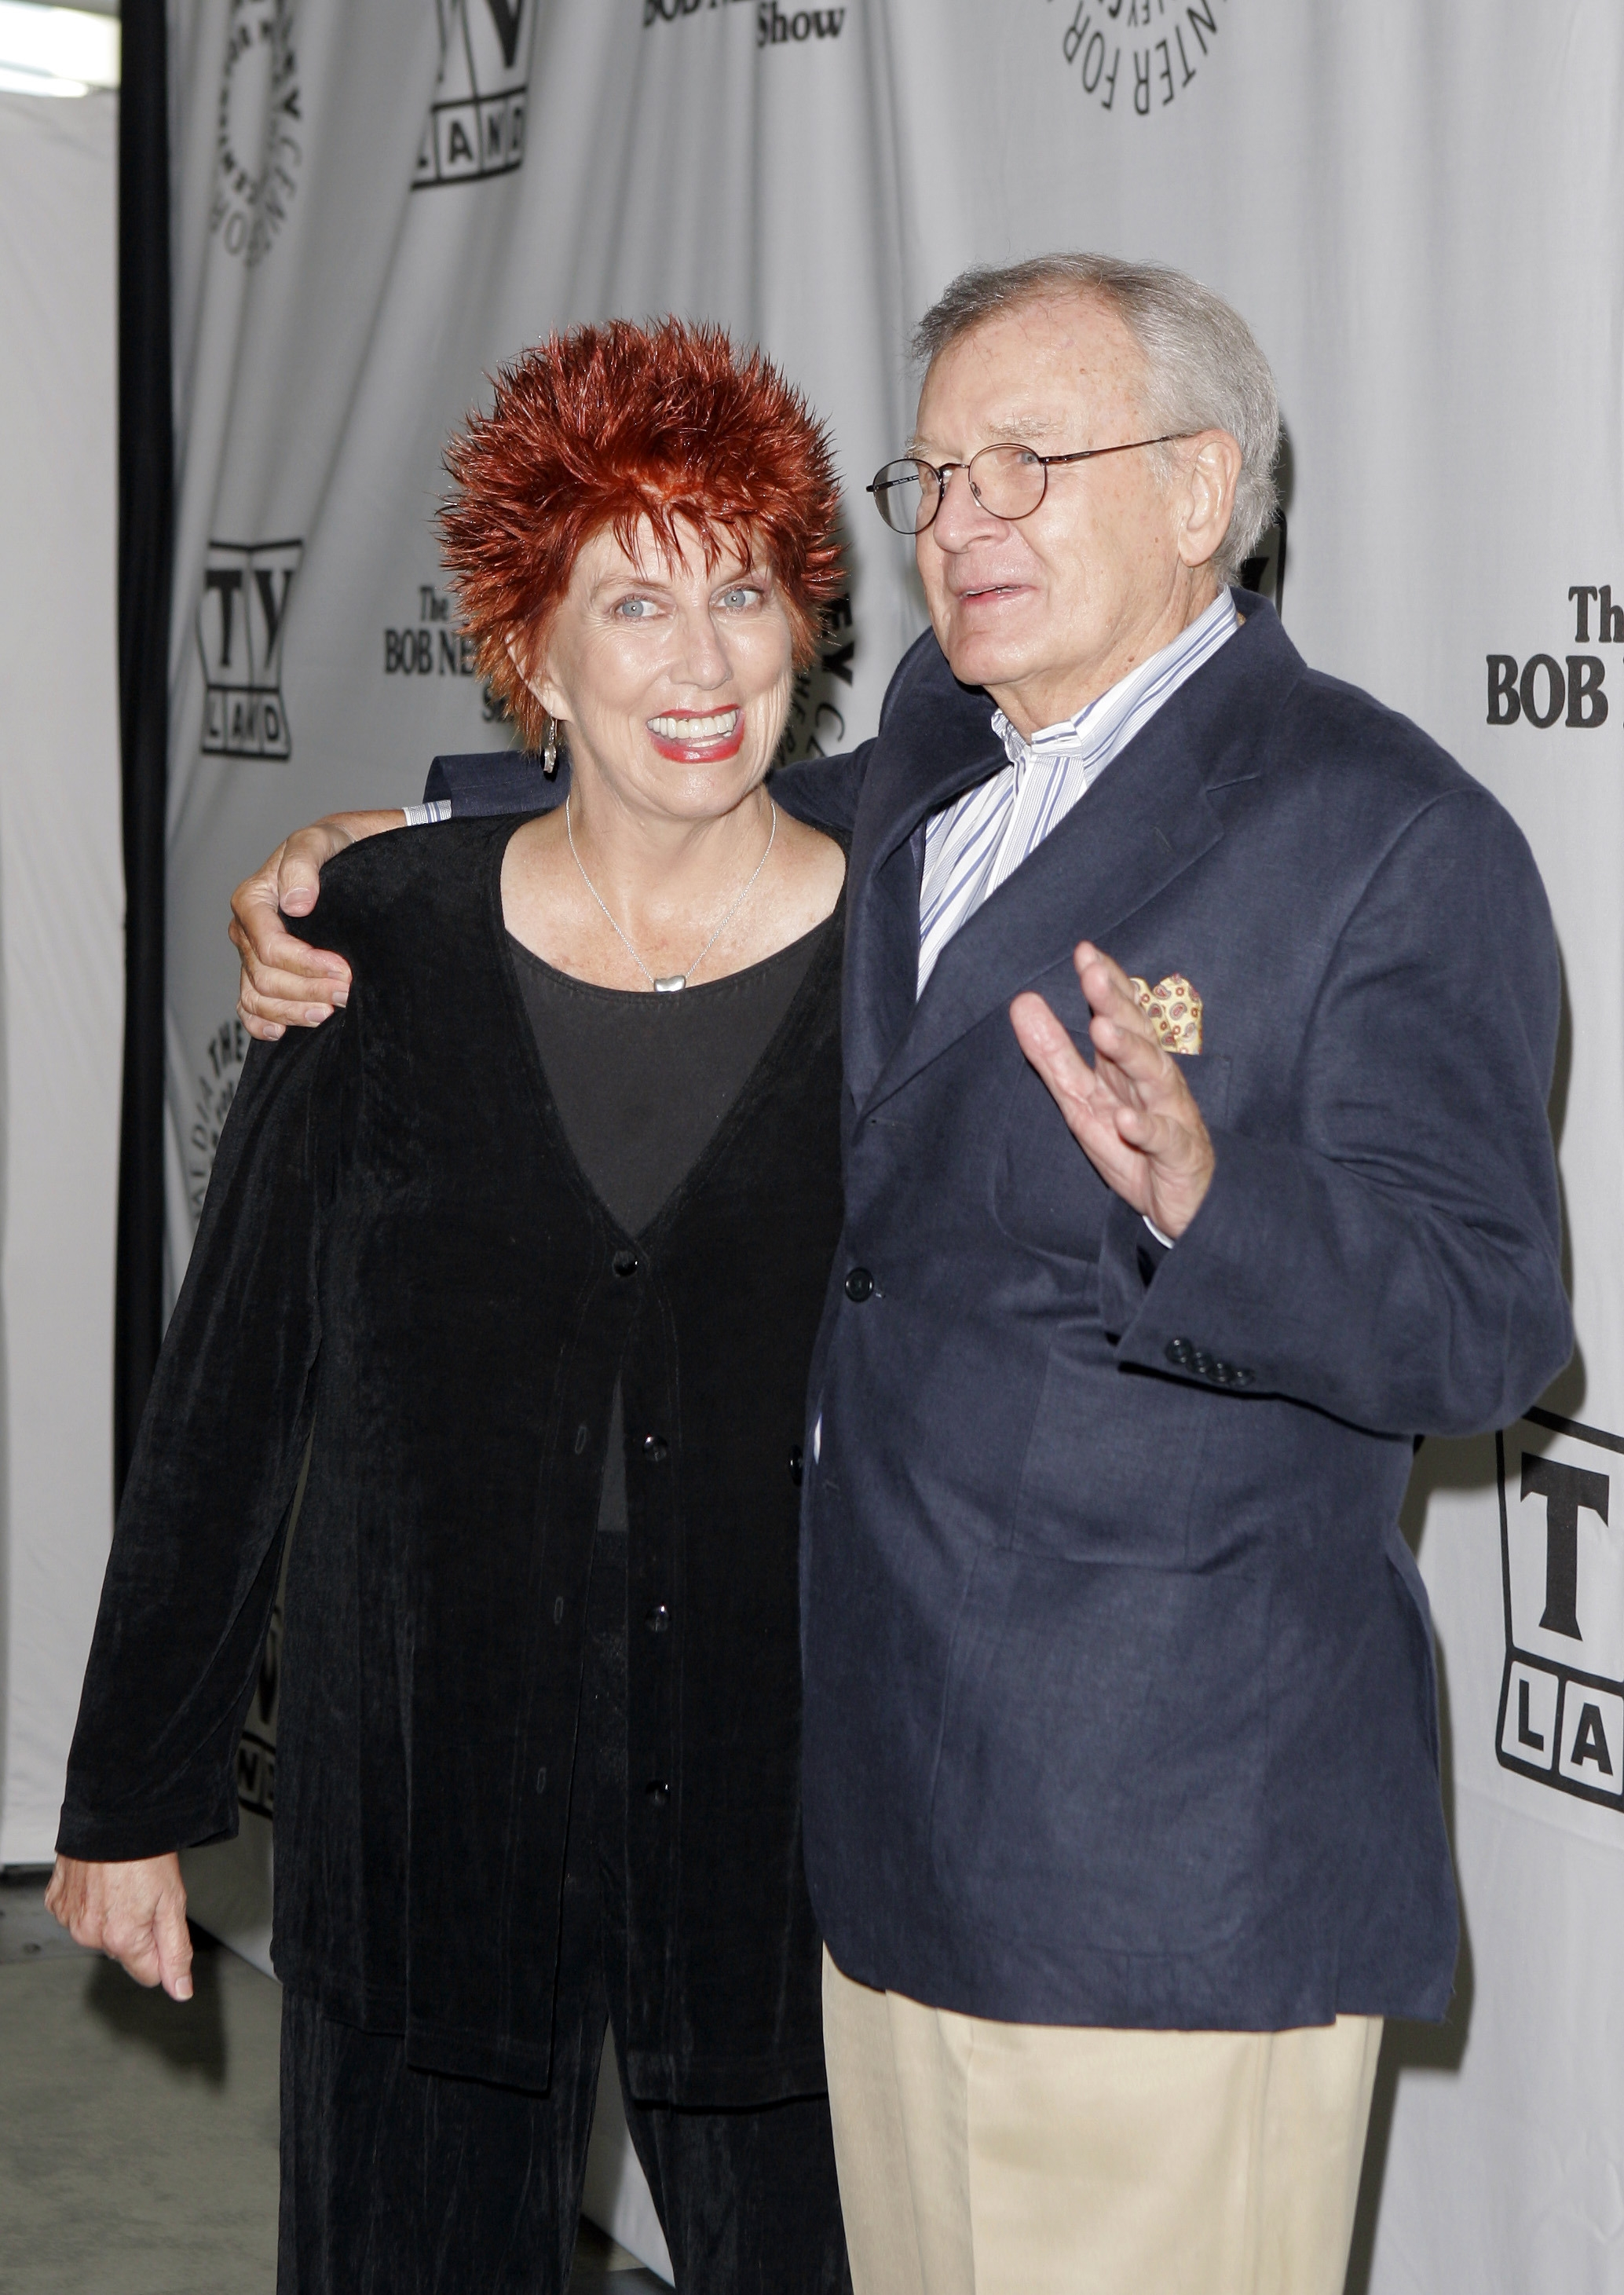 "In this Wednesday, Sept. 5, 2007 file photo, actors Marcia Wallace and Bill Daily arrive for TV Land's 35th anniversary tribute to ""The Bob Newhart Show"" in Beverly Hills, Calif. Wallace, who played a receptionist on the show, and the voice of Edna Krabappel on ""The Simpsons,"" has died."